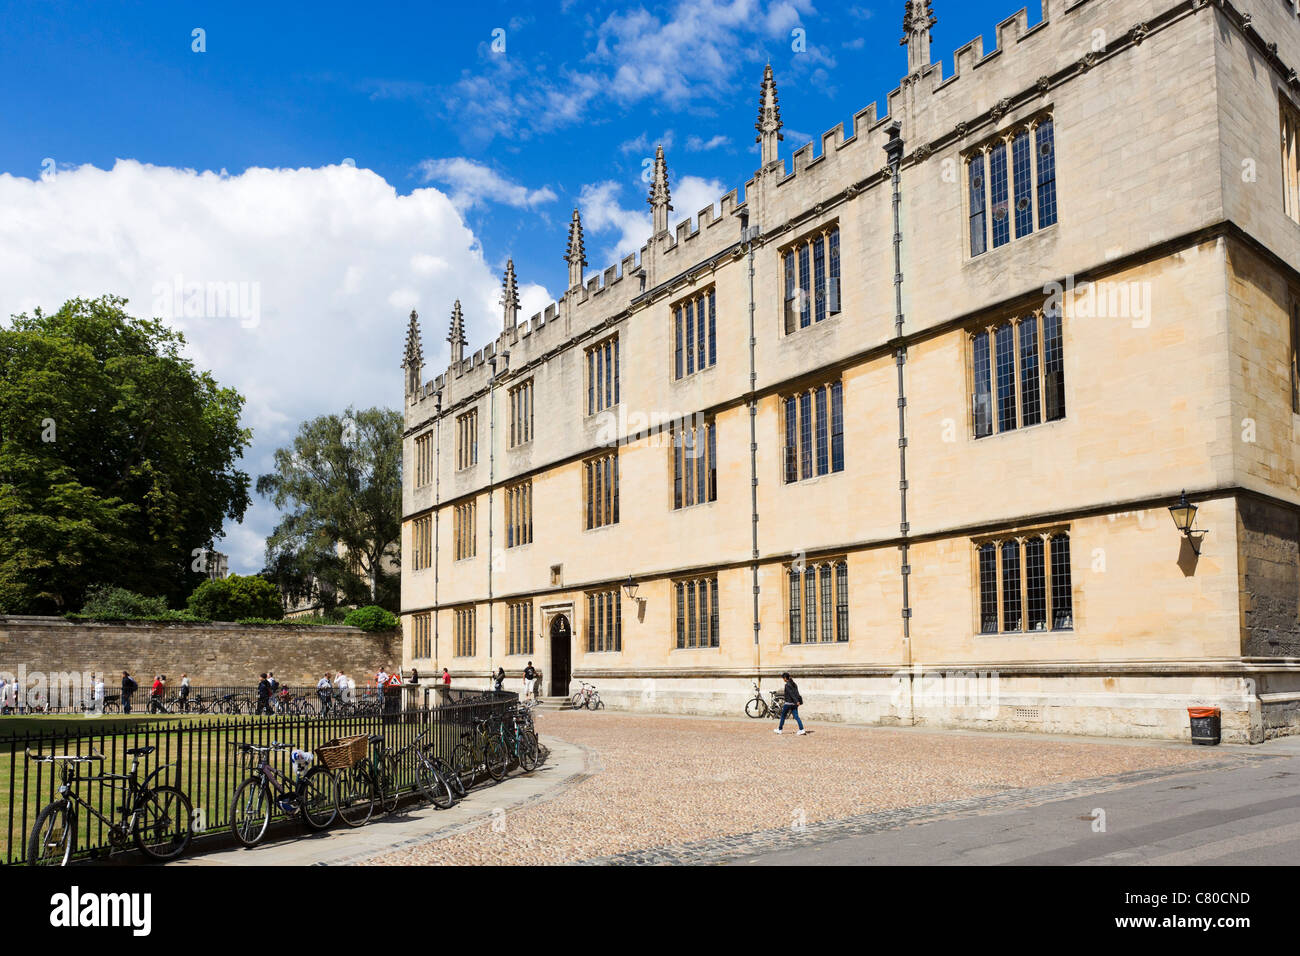 The Bodleian Library from Radcliffe Square, Oxford, Oxfordshire, England, UK - Stock Image